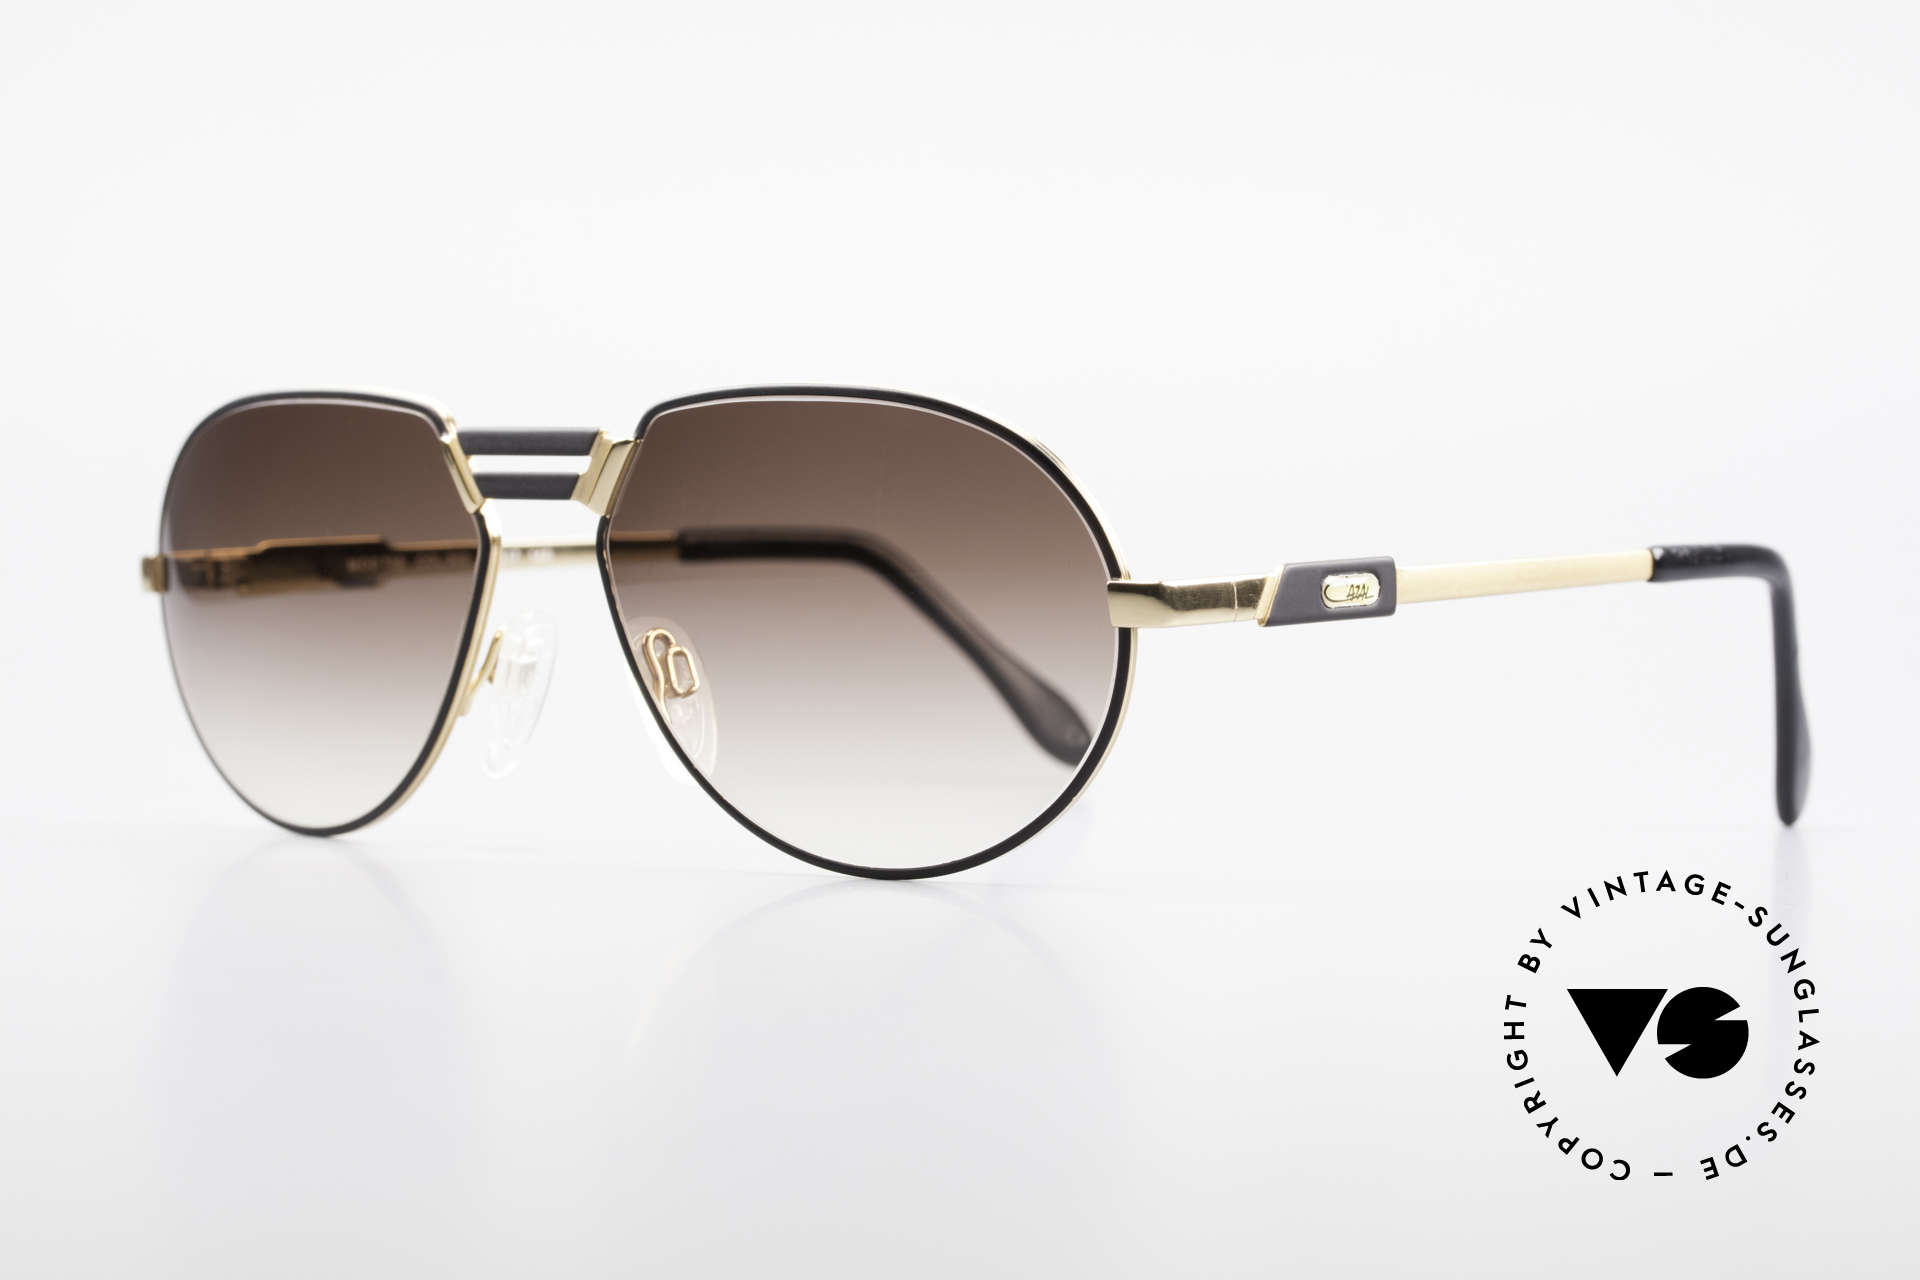 Cazal 739 Extraordinary Sunglasses XL, very elegant and top-quality; made in Germany, Made for Men